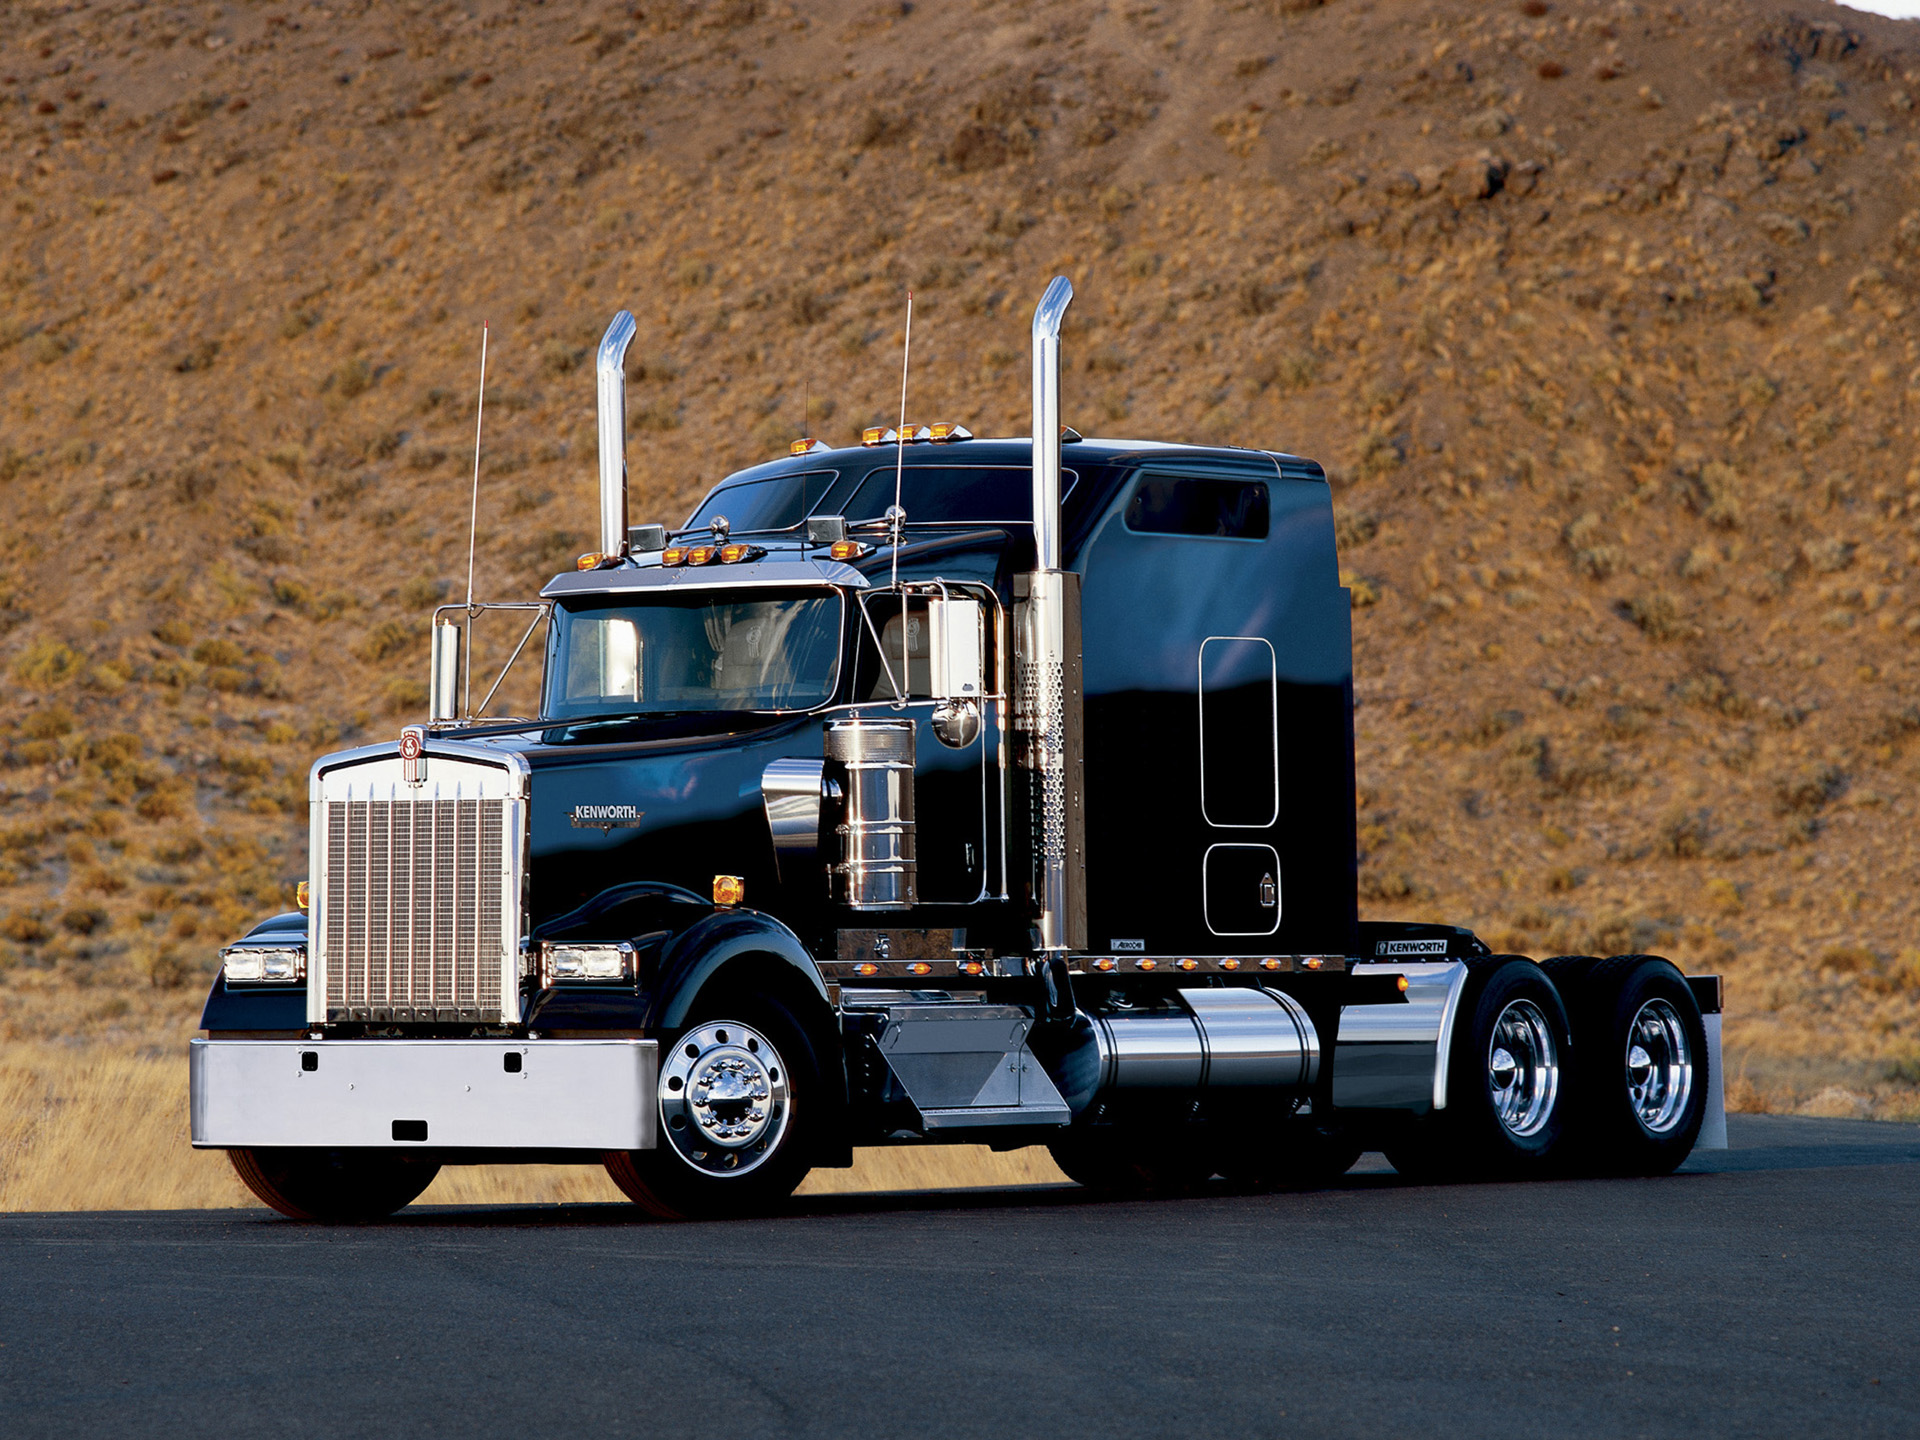 kenworth images - photo #8